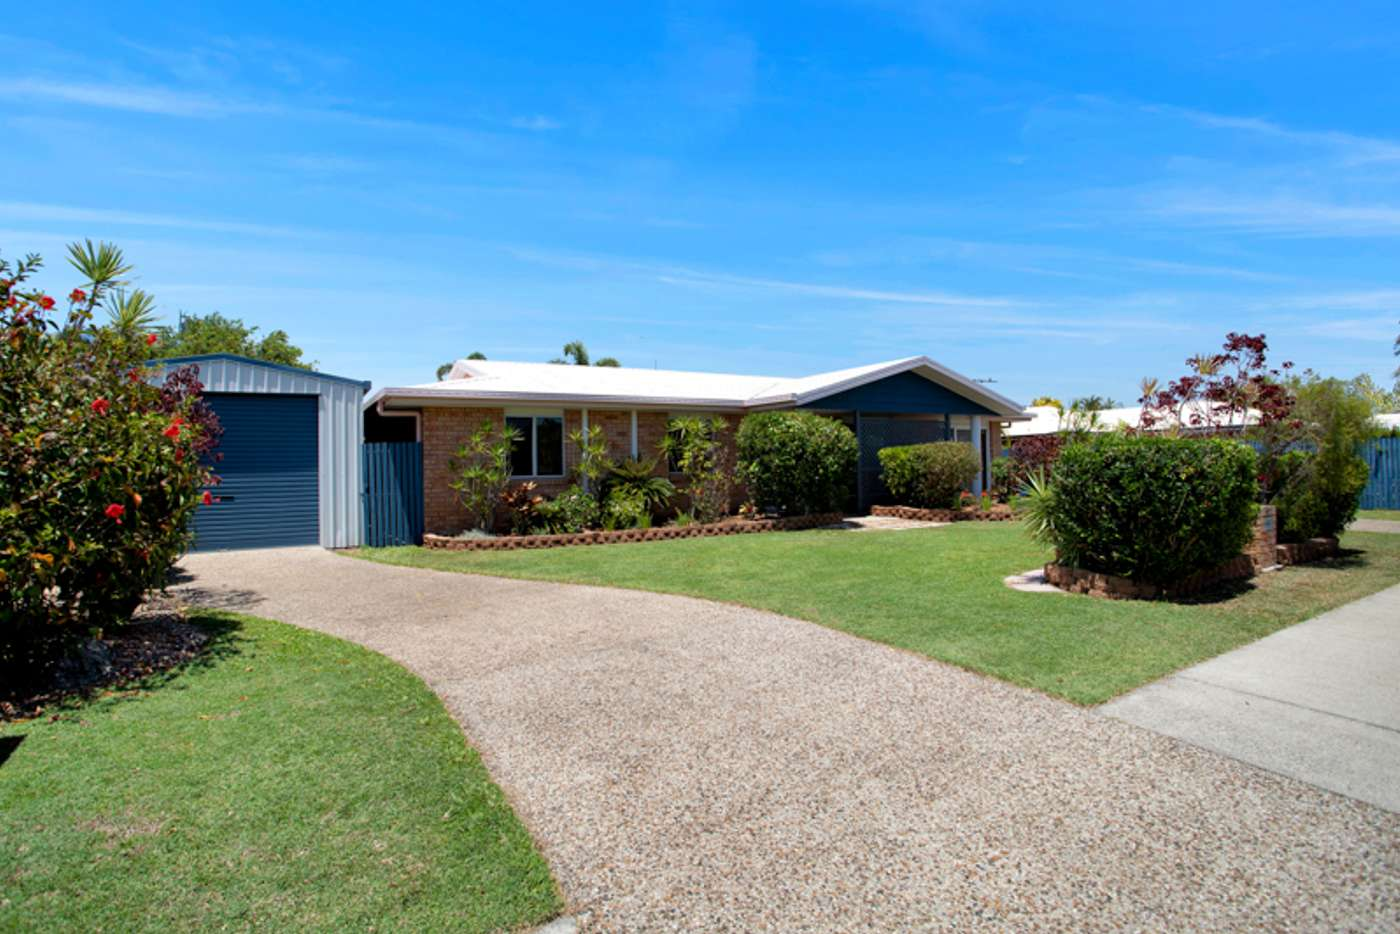 Fifth view of Homely house listing, 91 Broomdykes Drive, Beaconsfield QLD 4740